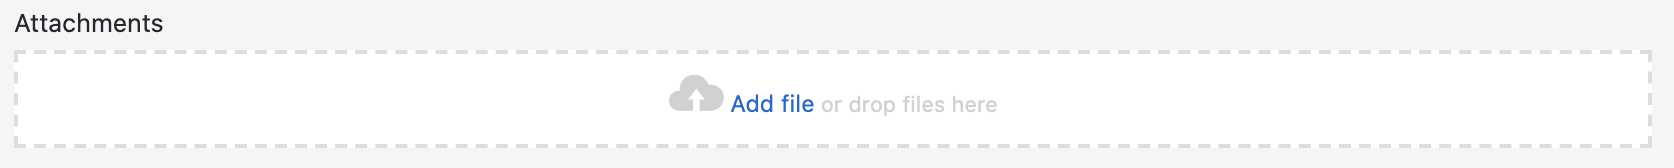 Add file button